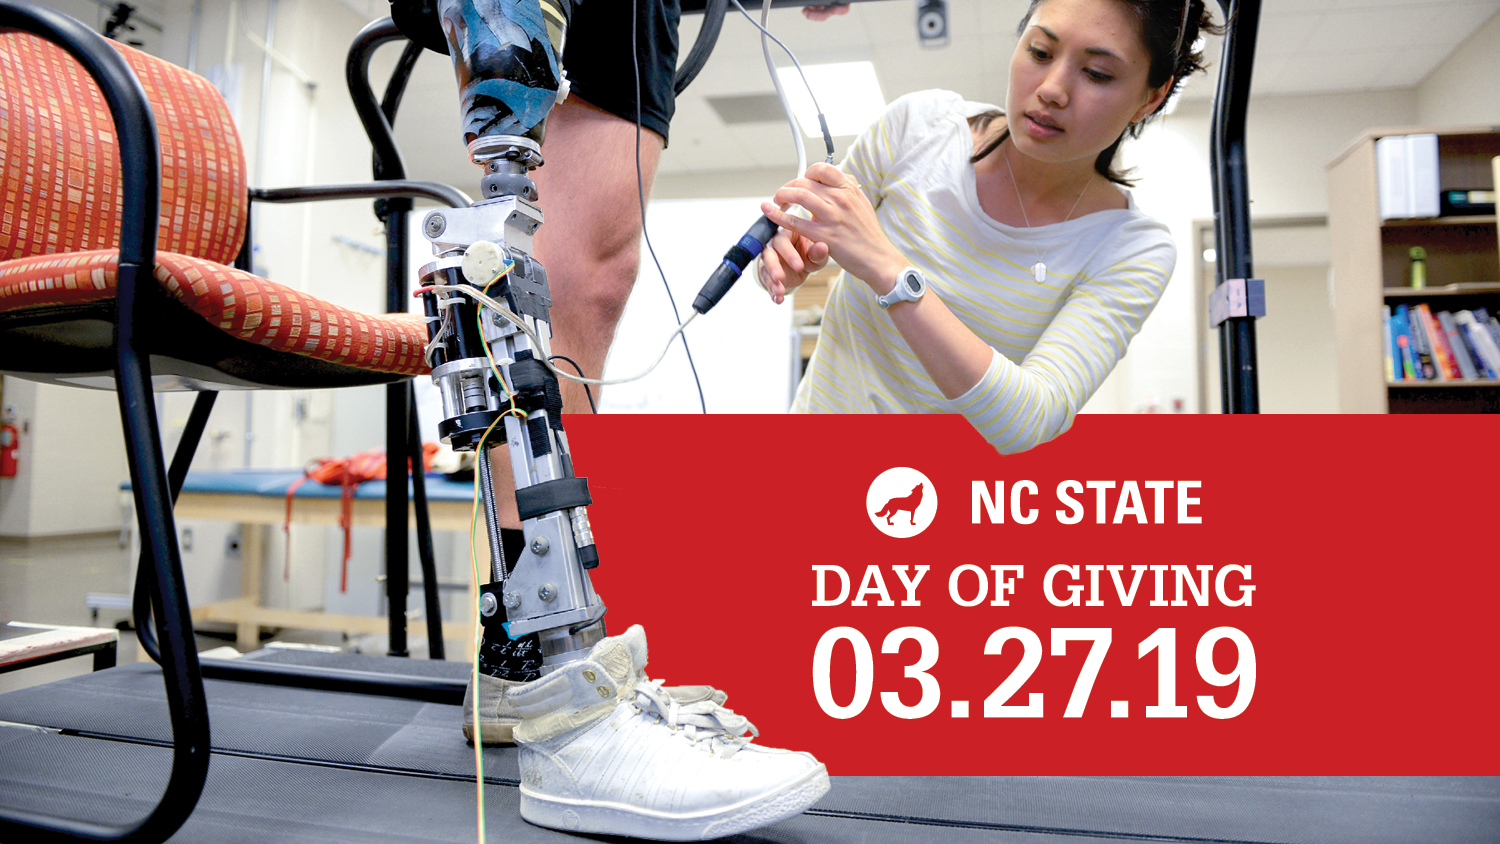 NC State Day of Giving: 3/27/19